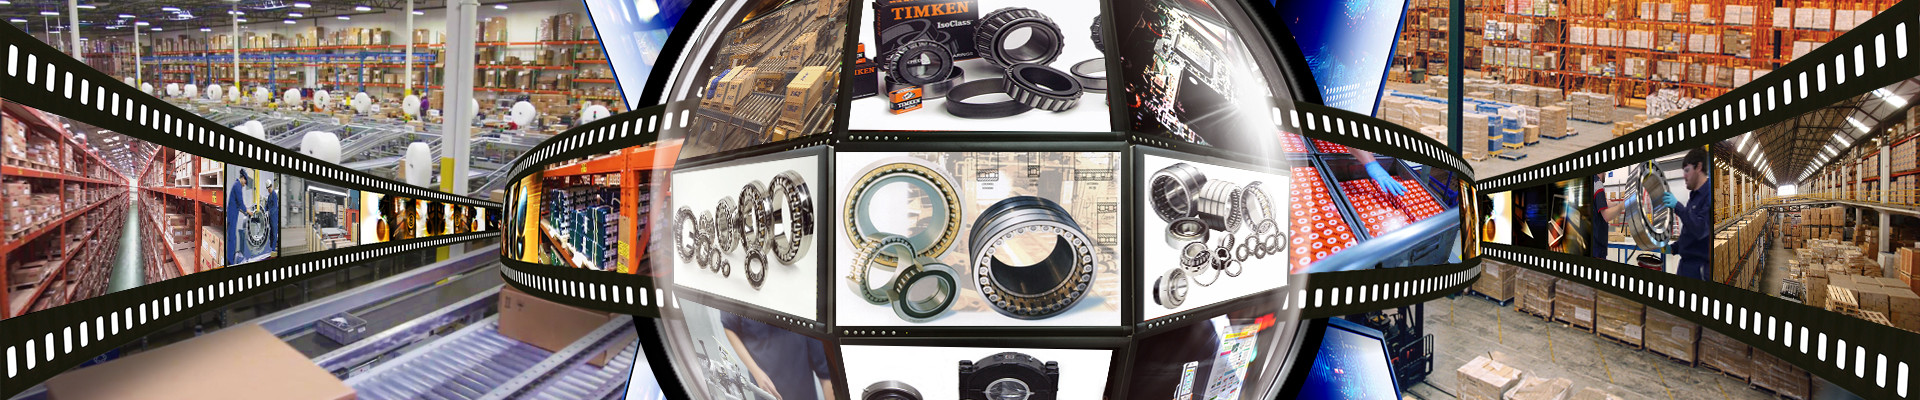 Distributor Bearing Wholesalers Inc